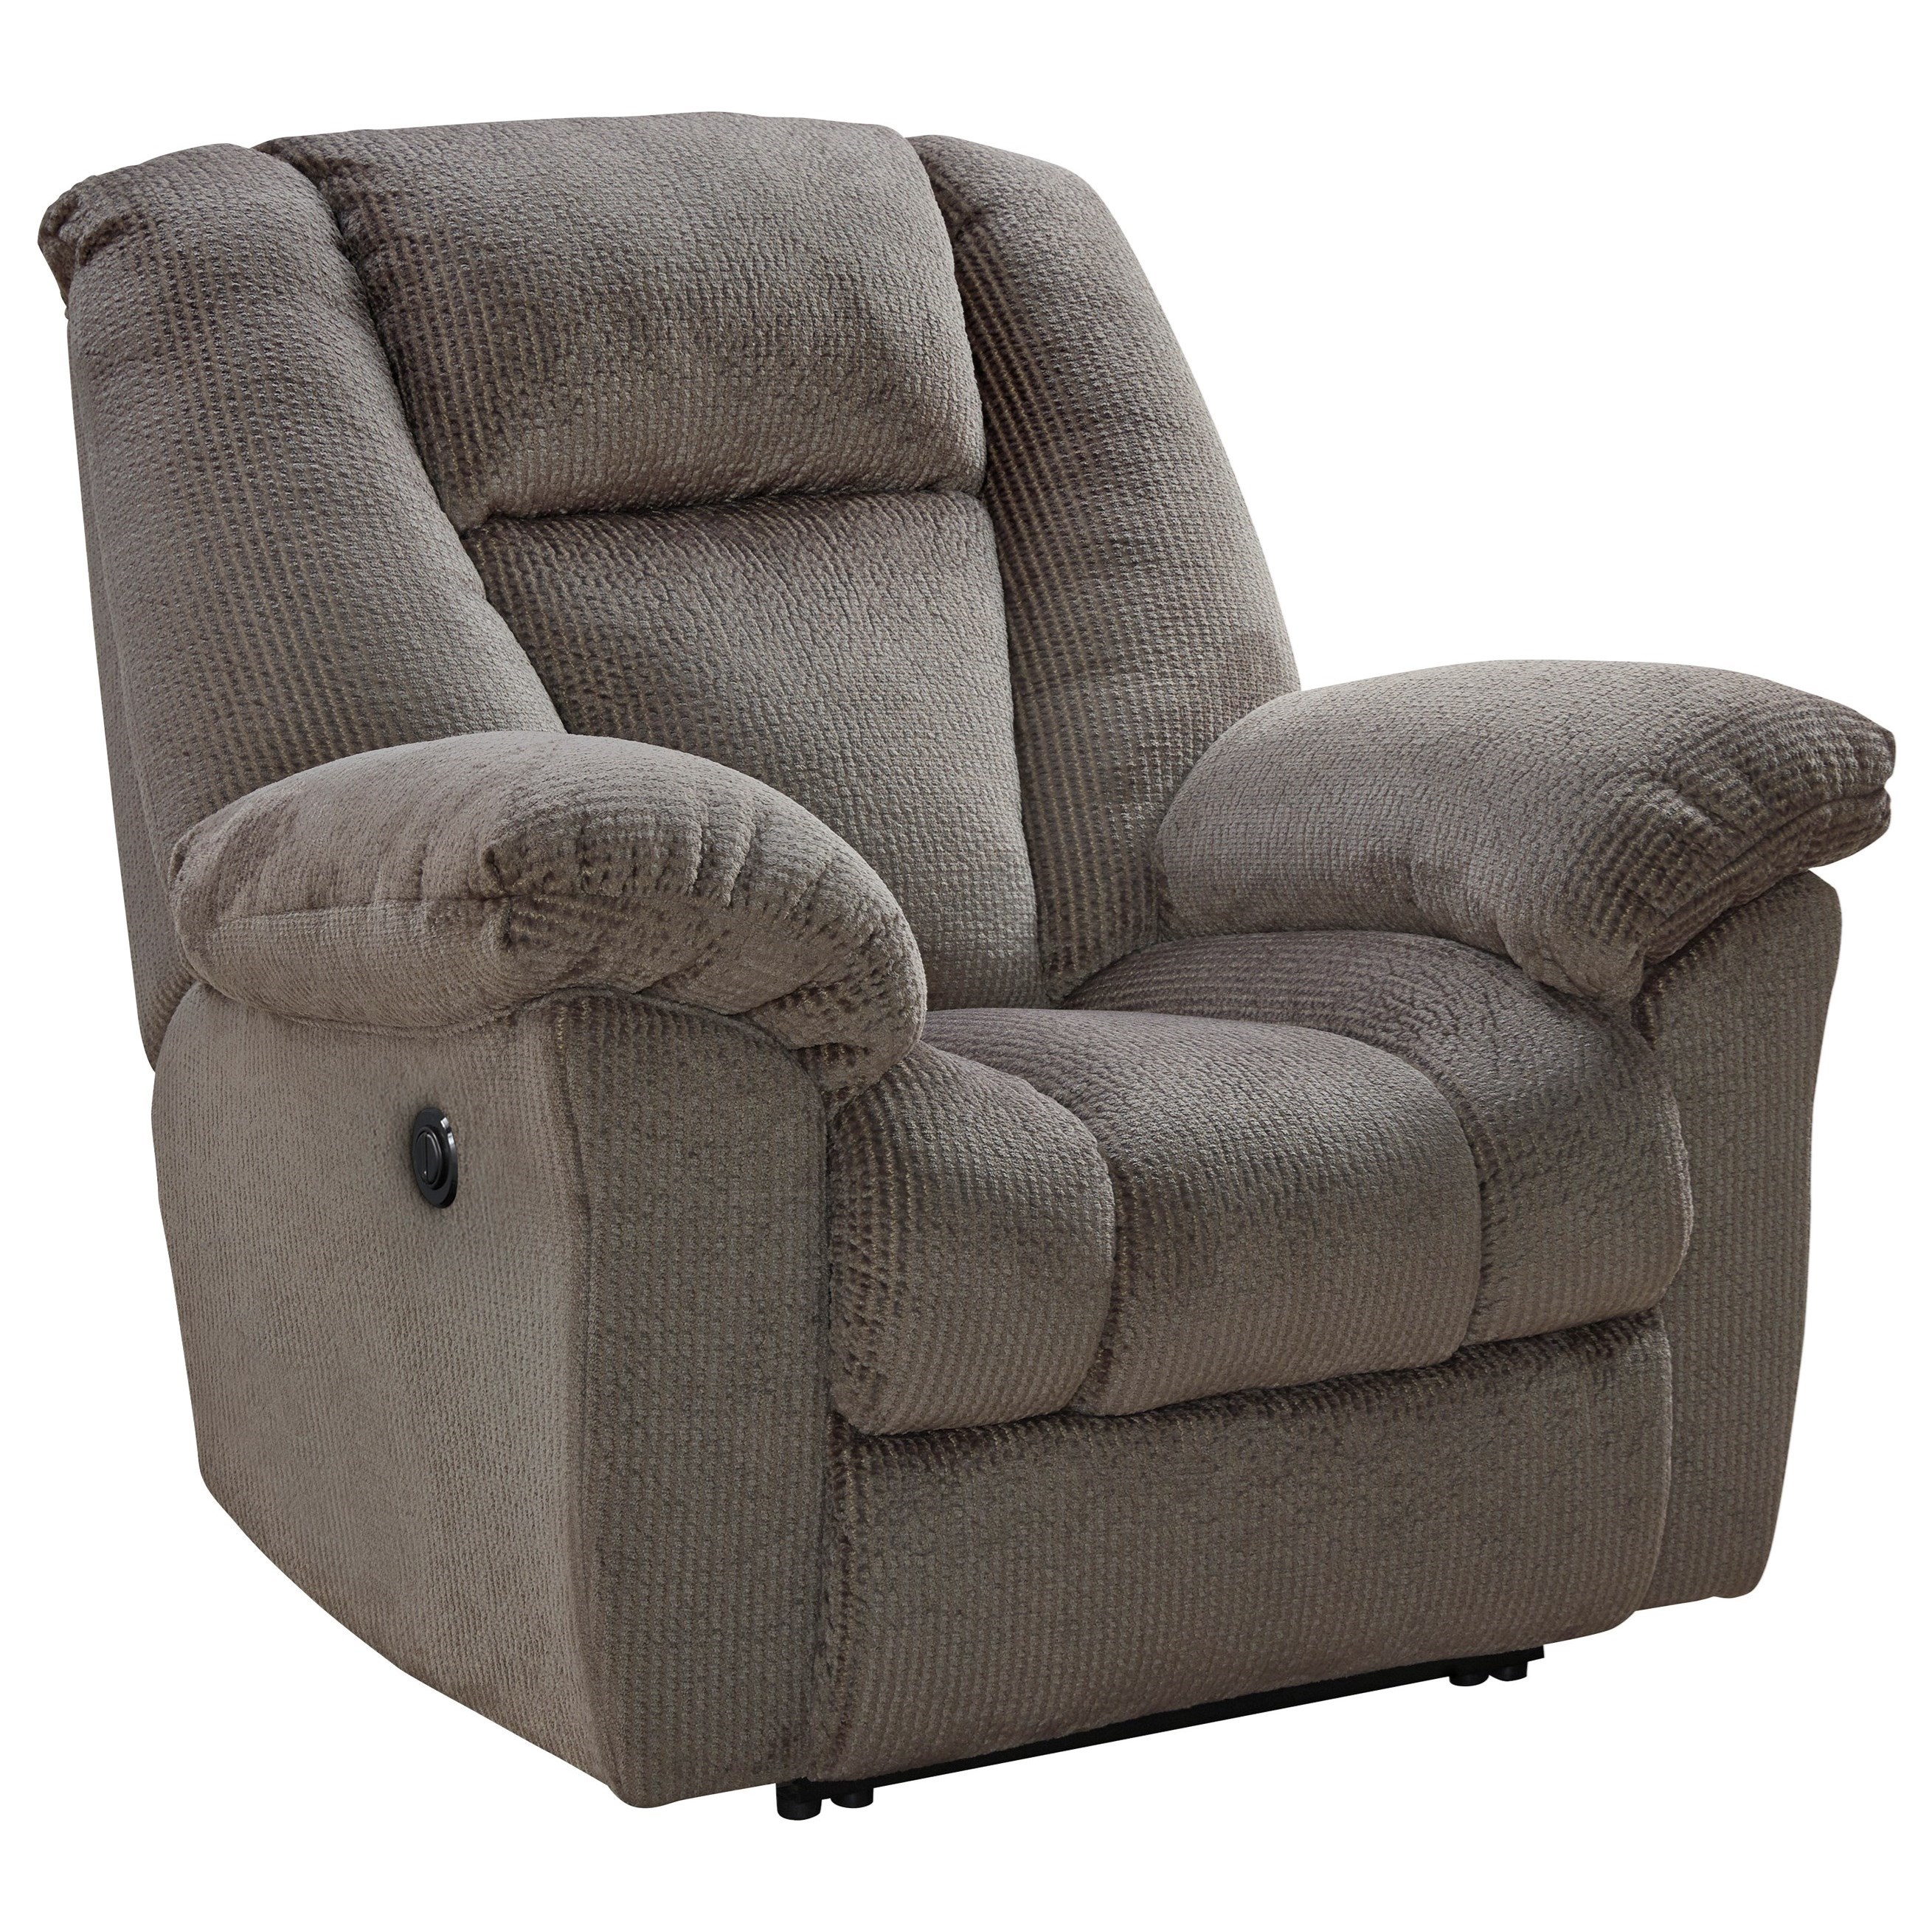 Nimmons Power Recliner at Van Hill Furniture